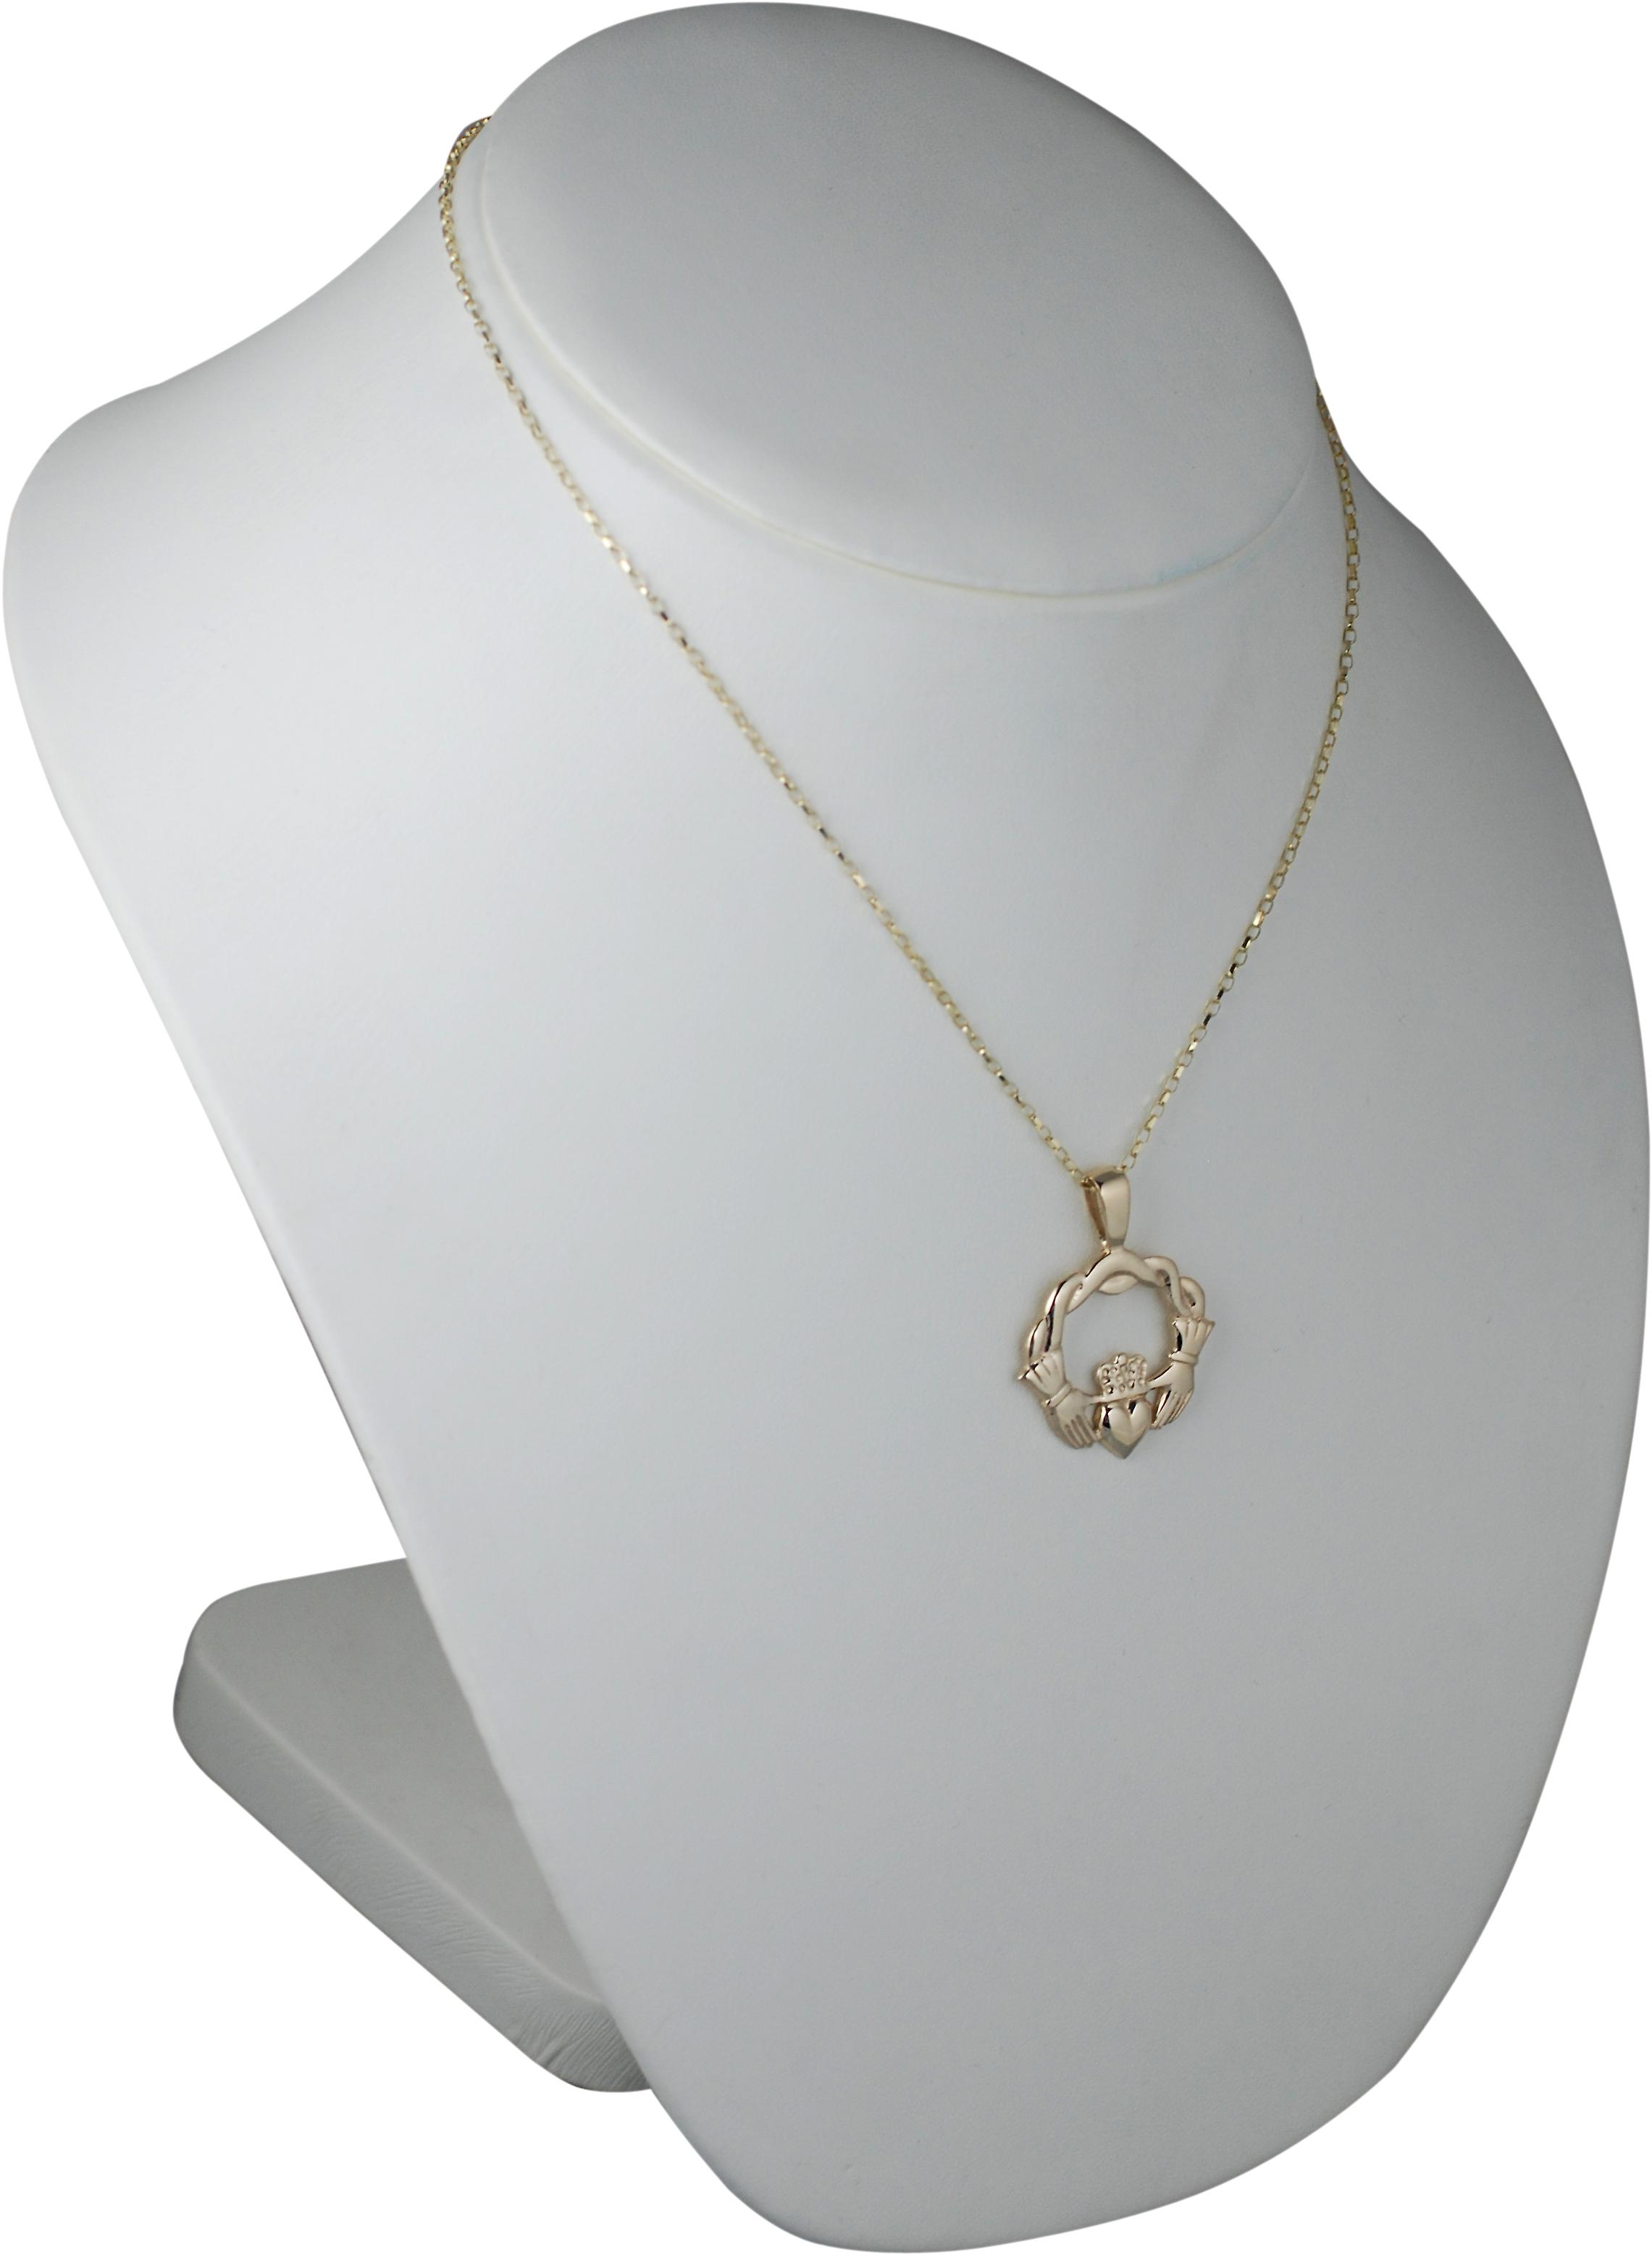 9ct Gold 27x30mm twisted cord top Claddagh Pendant with belcher Chain 18 inches